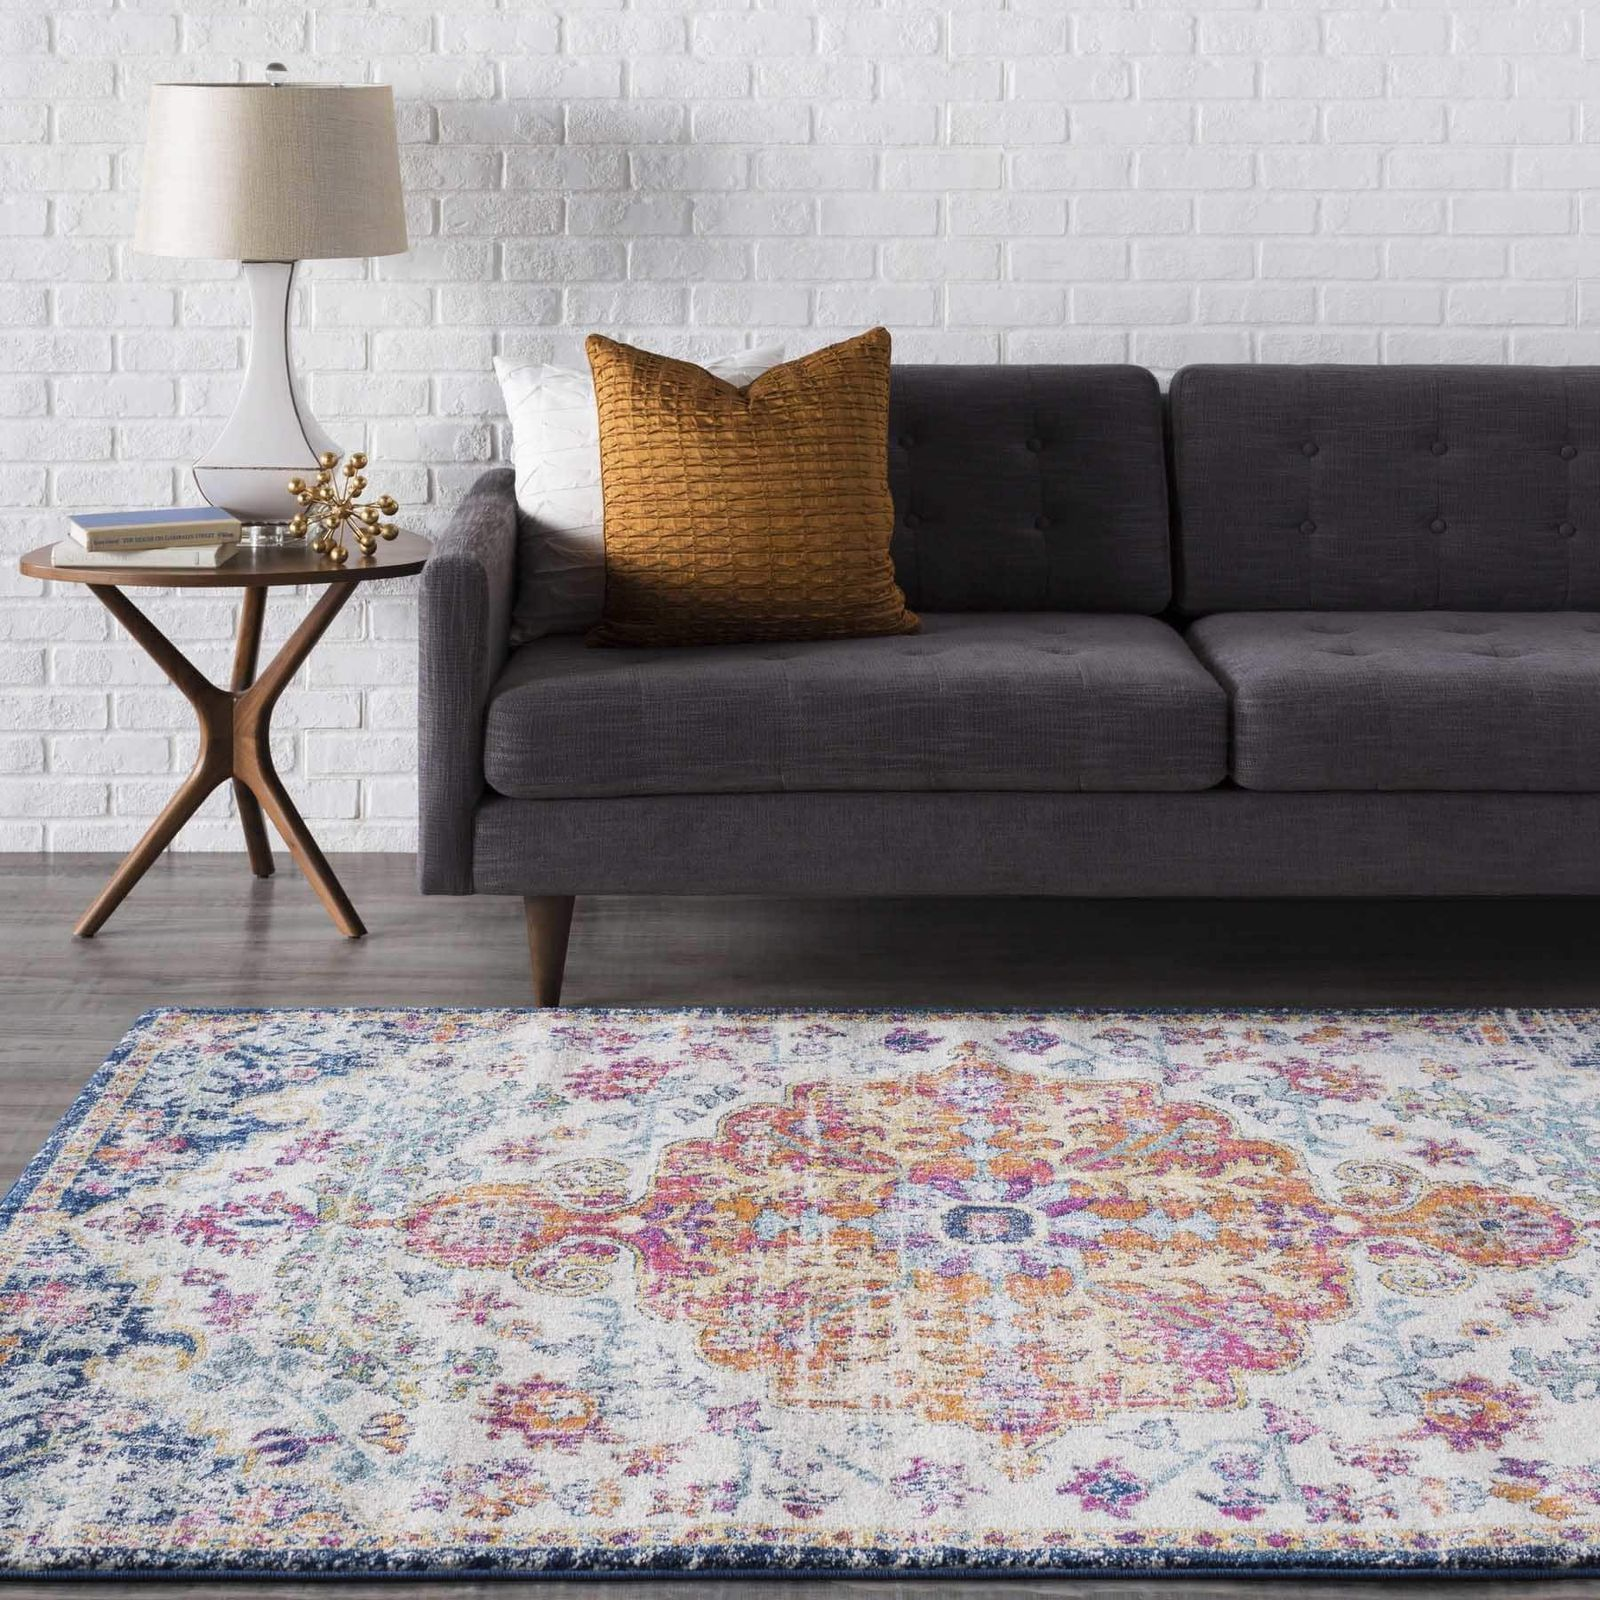 Affordable Places To Buy Stylish Area Rugs Buy Area Rugs Mattress Furniture Affordable Area Rugs